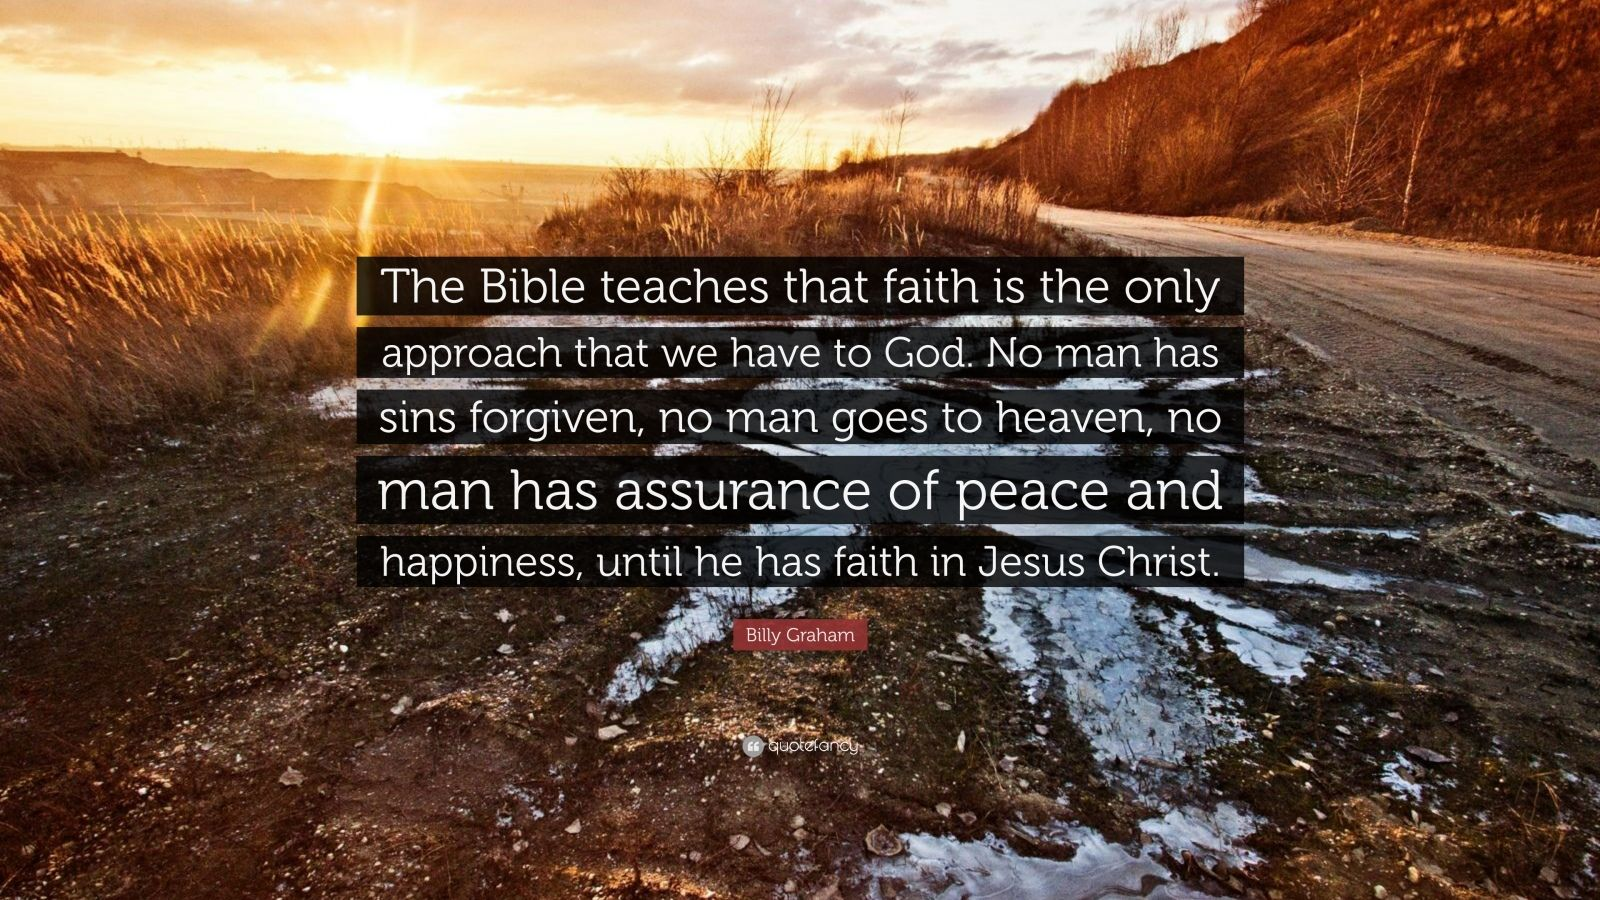 """Billy Graham Quote: """"The Bible teaches that faith is the only approach that we have to God. No man has sins forgiven, no man goes to heaven, no man has assurance of peace and happiness, until he has faith in Jesus Christ."""""""